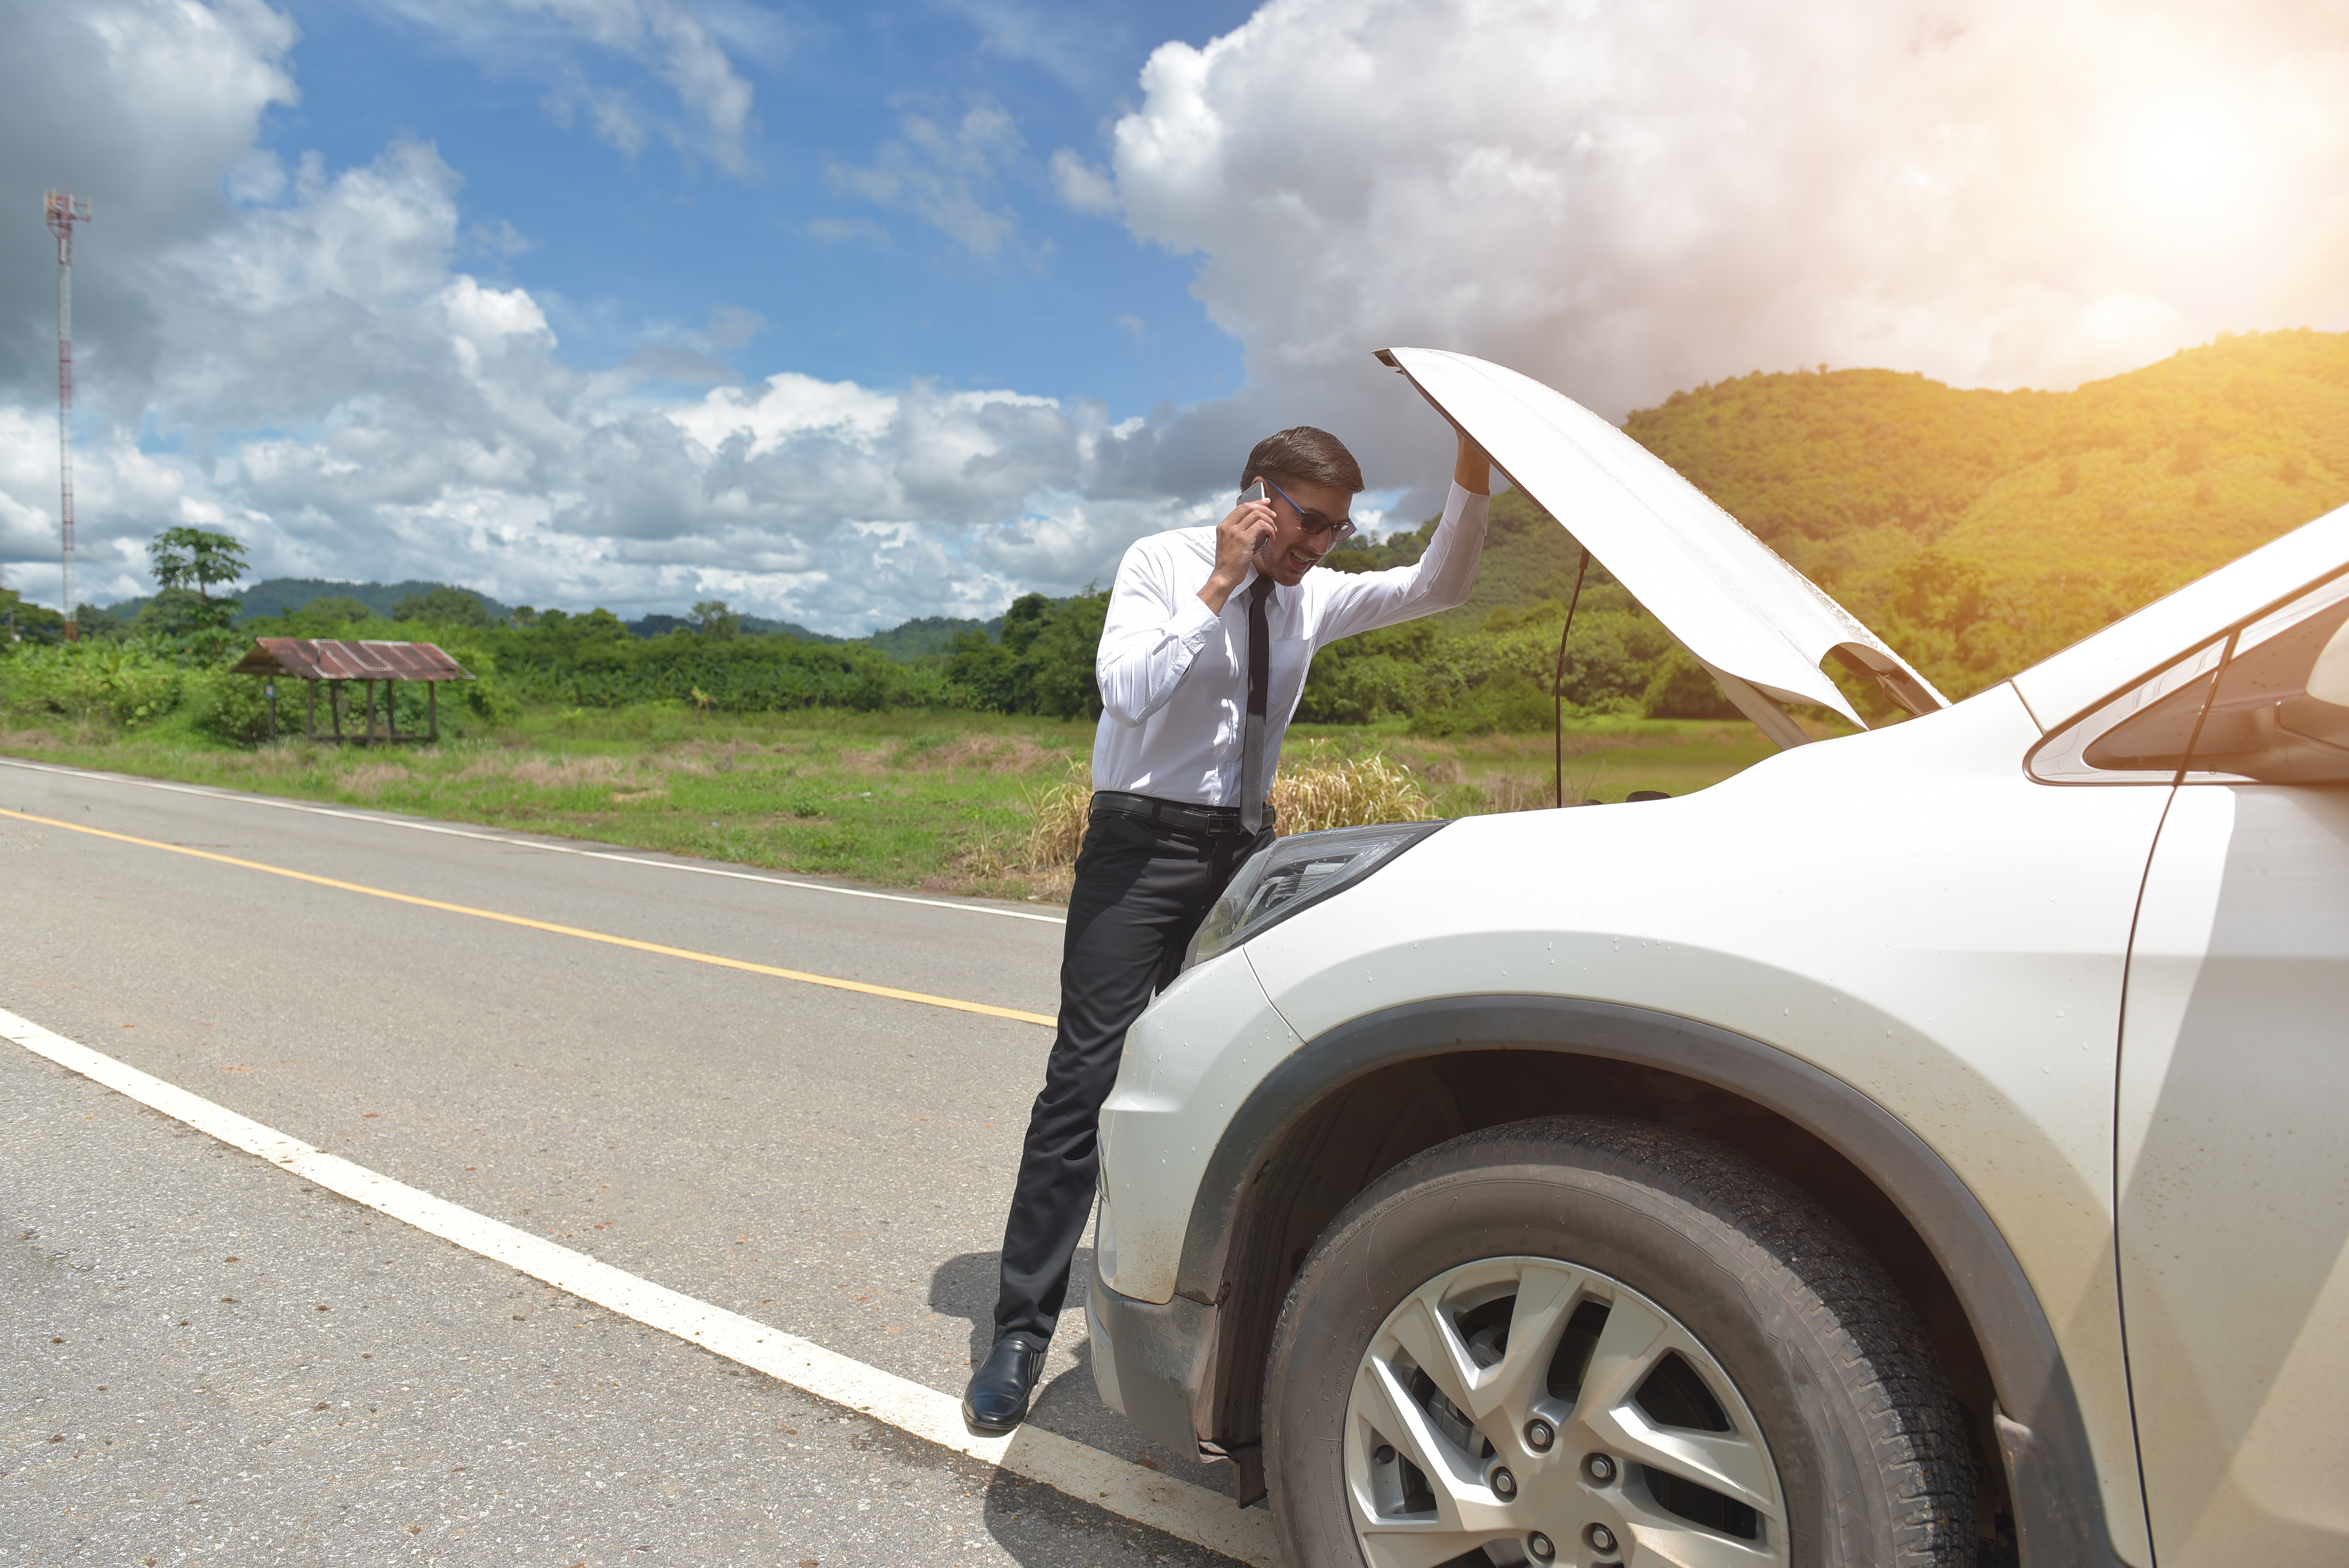 Man with broken down vehilce on highway